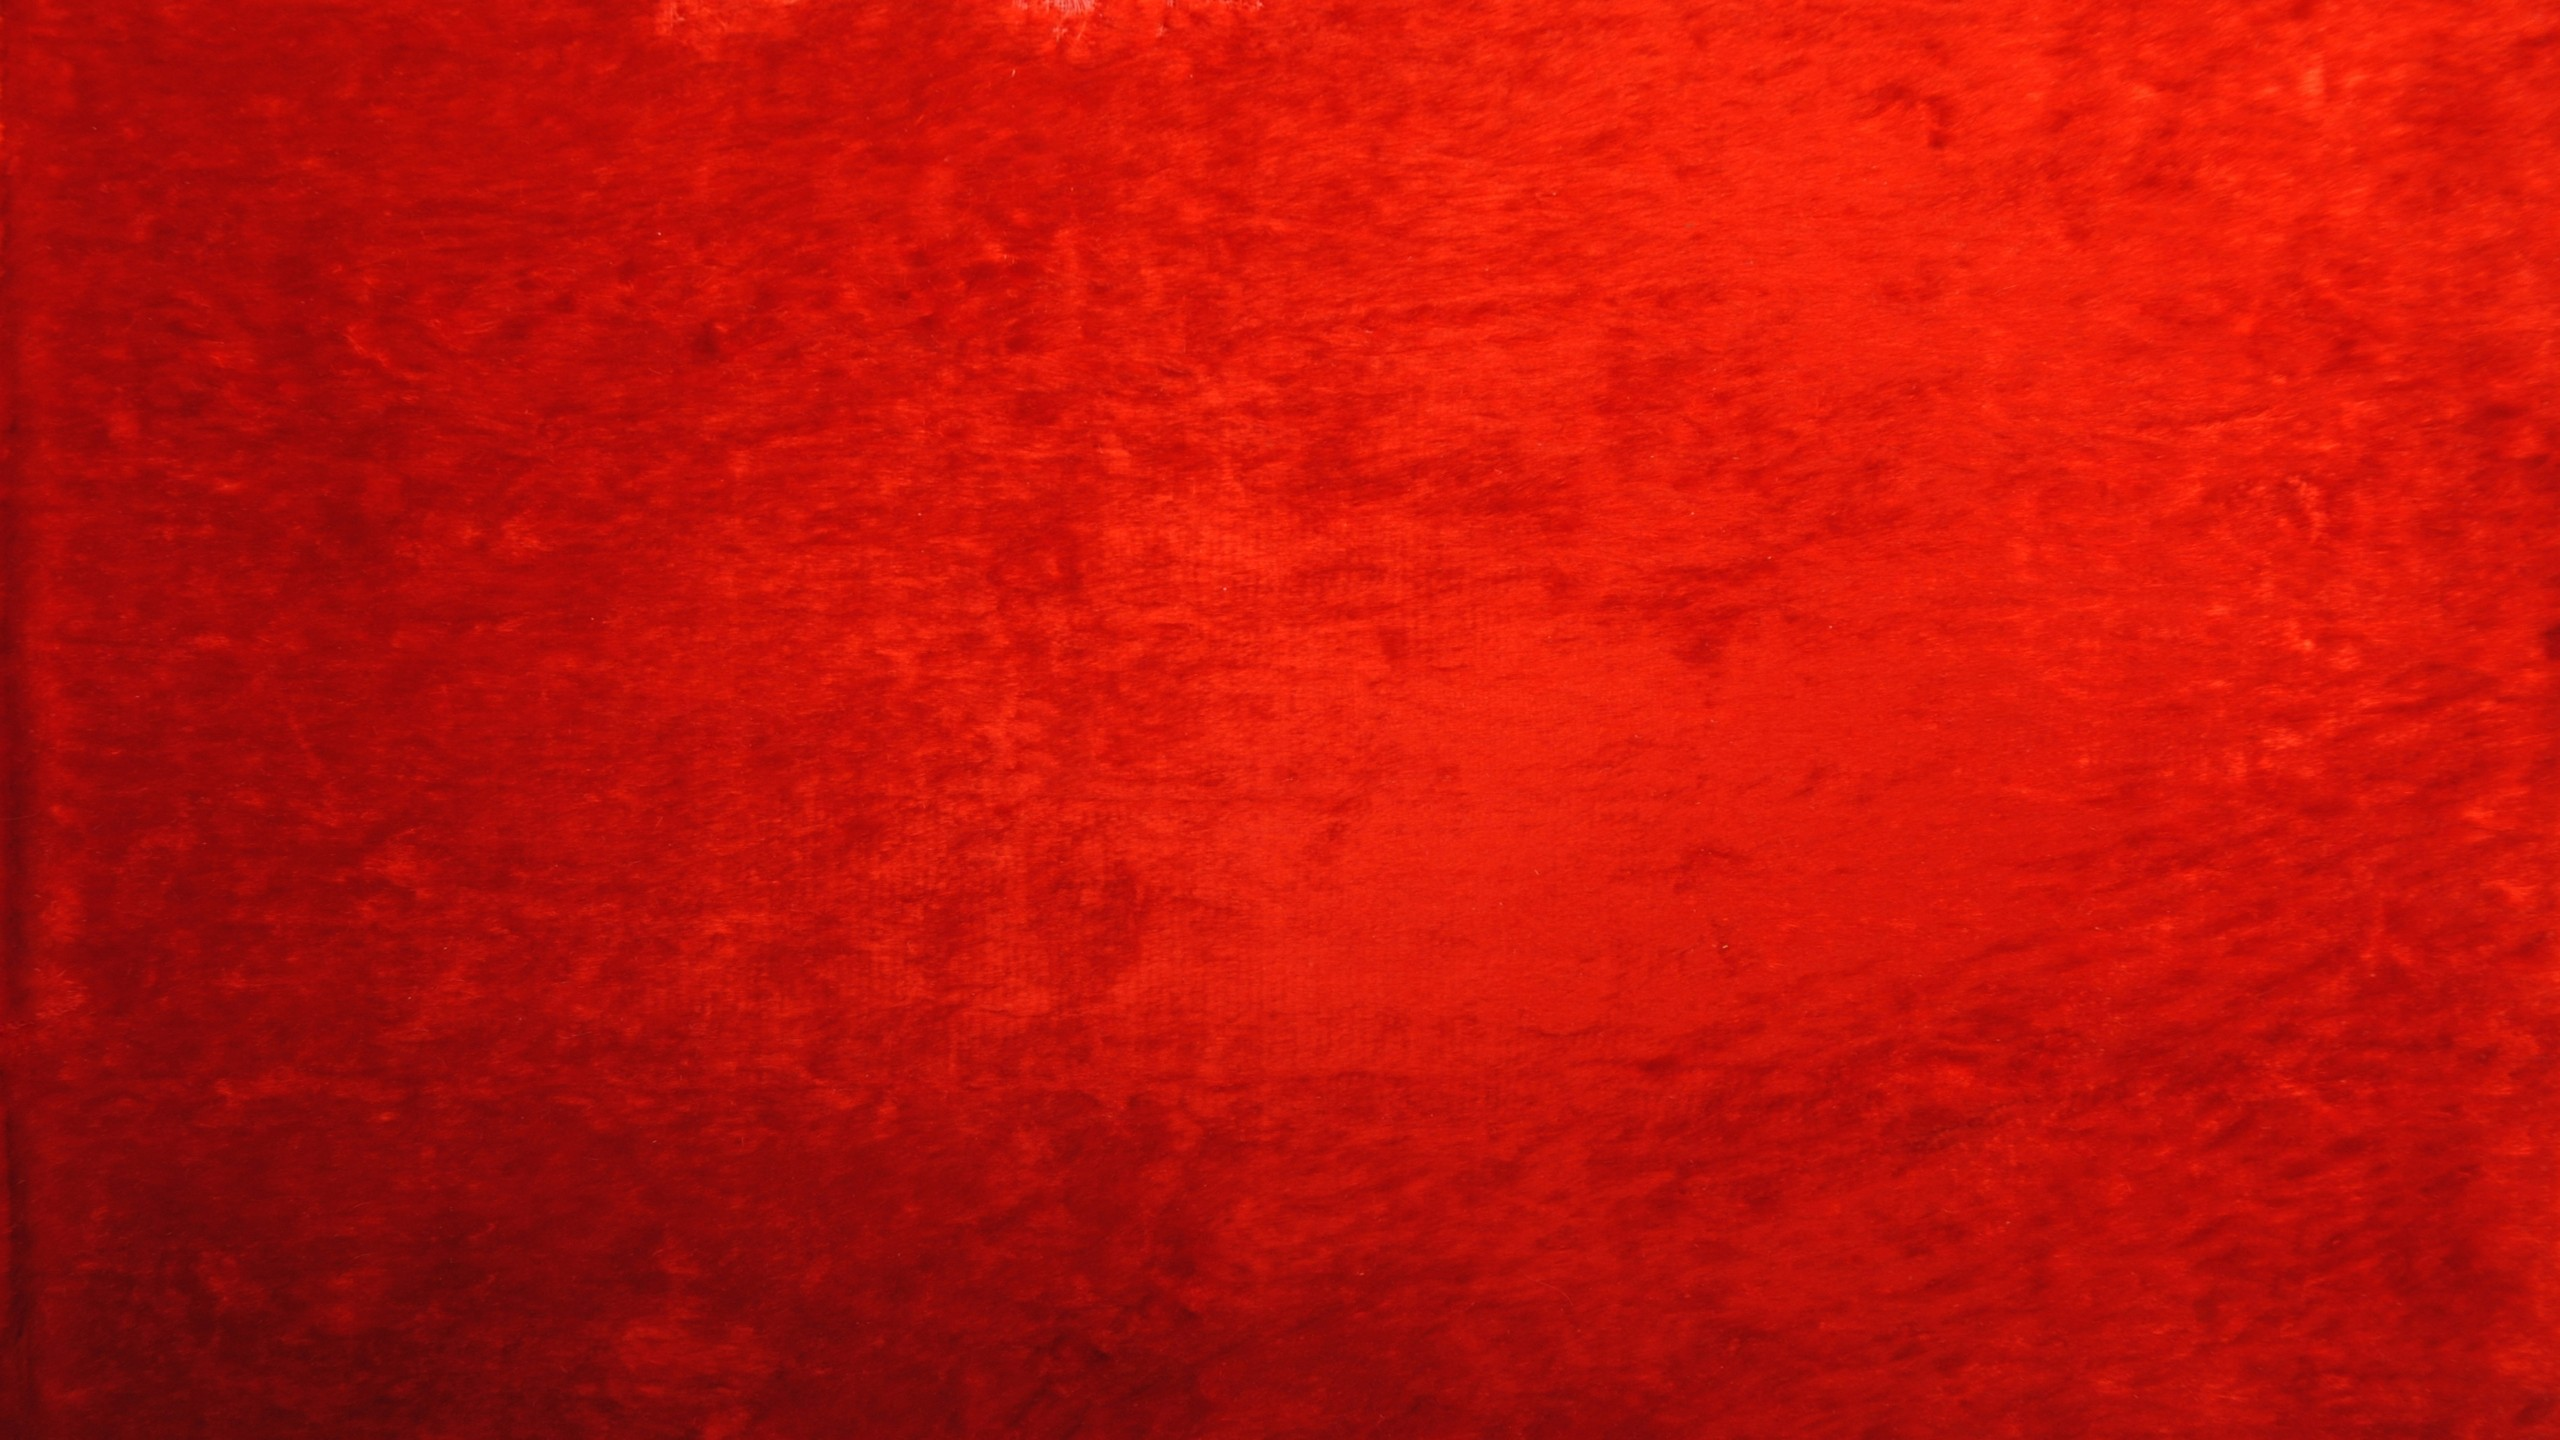 Red texture background download free awesome hd for Velvet wallpaper